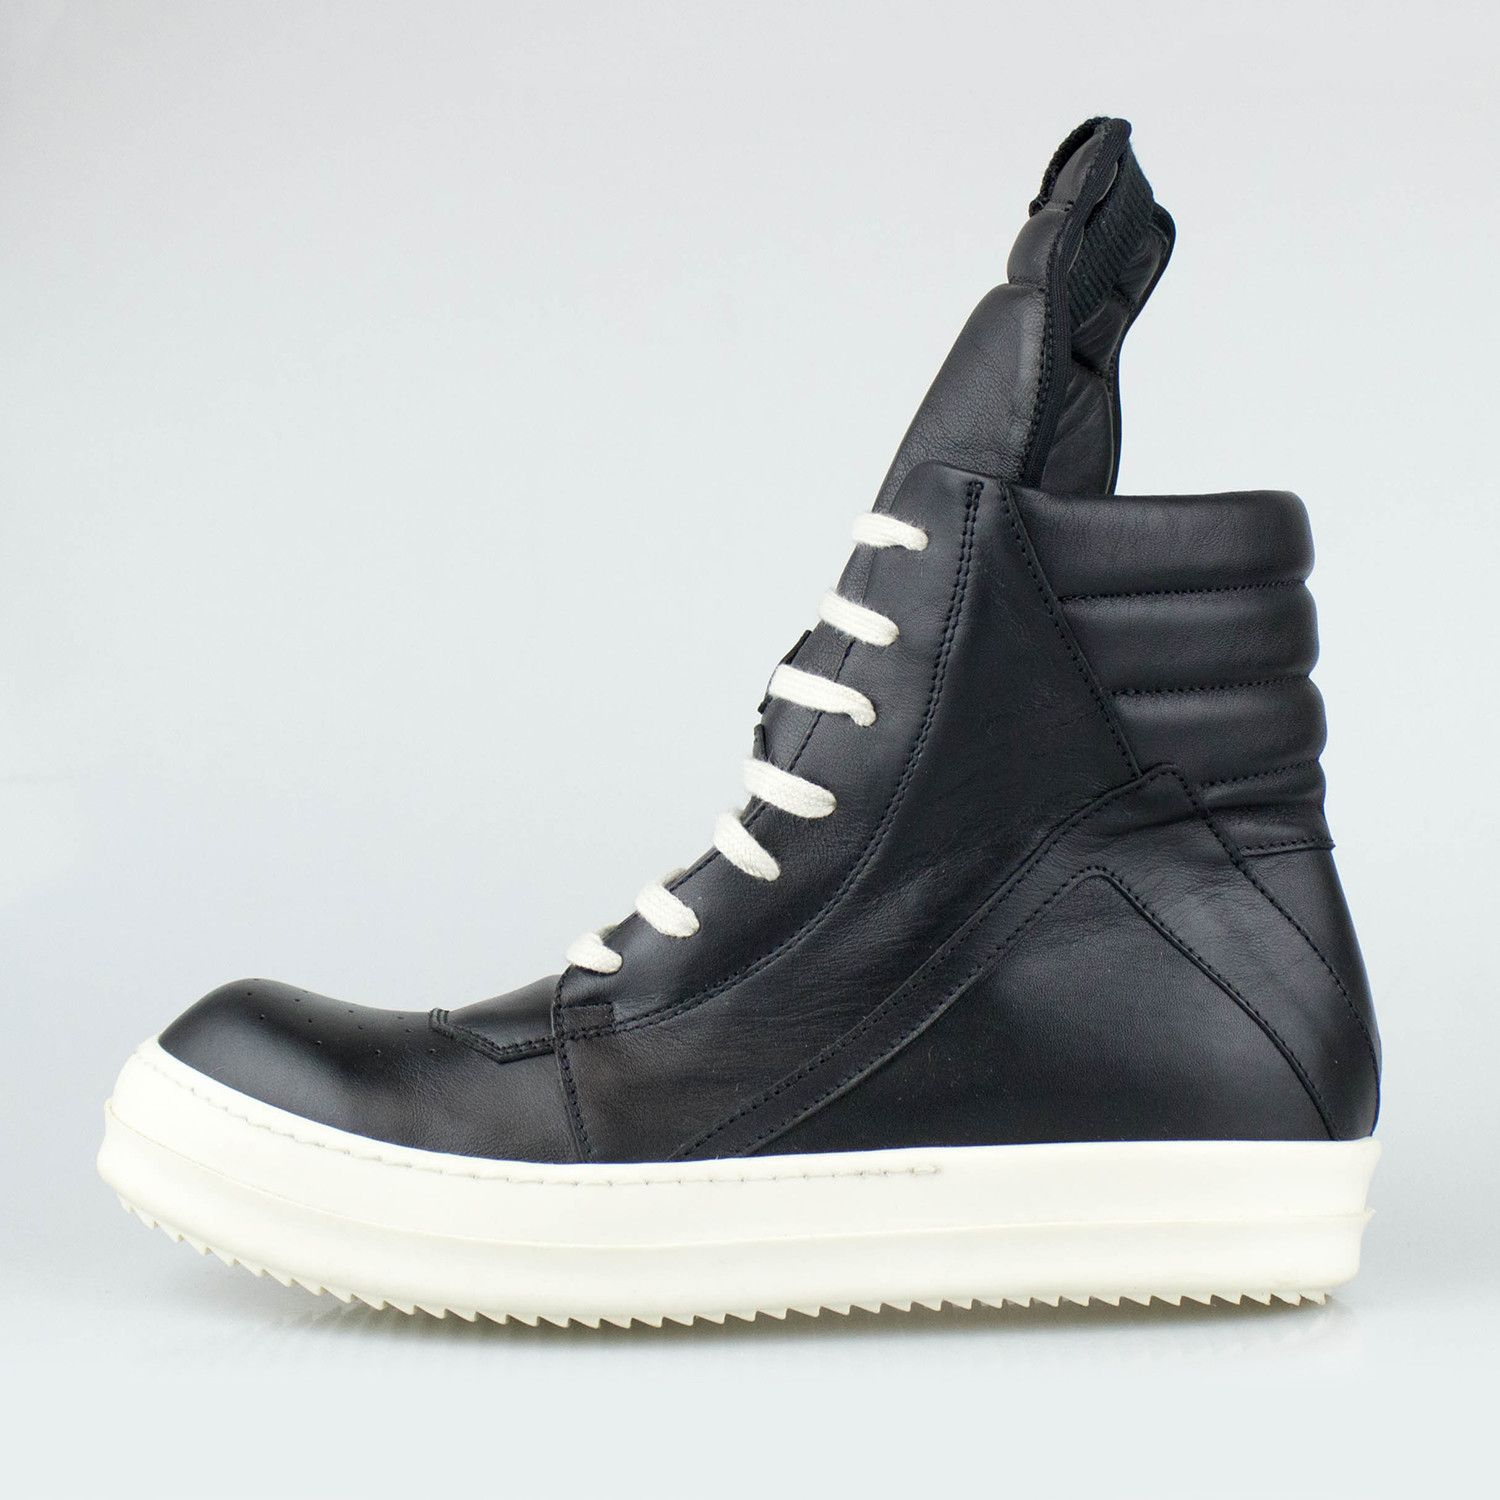 a8c9f4d25f53 Rick Owens Geobasket Sneakers // Black | Leggings Fashion | Pinterest